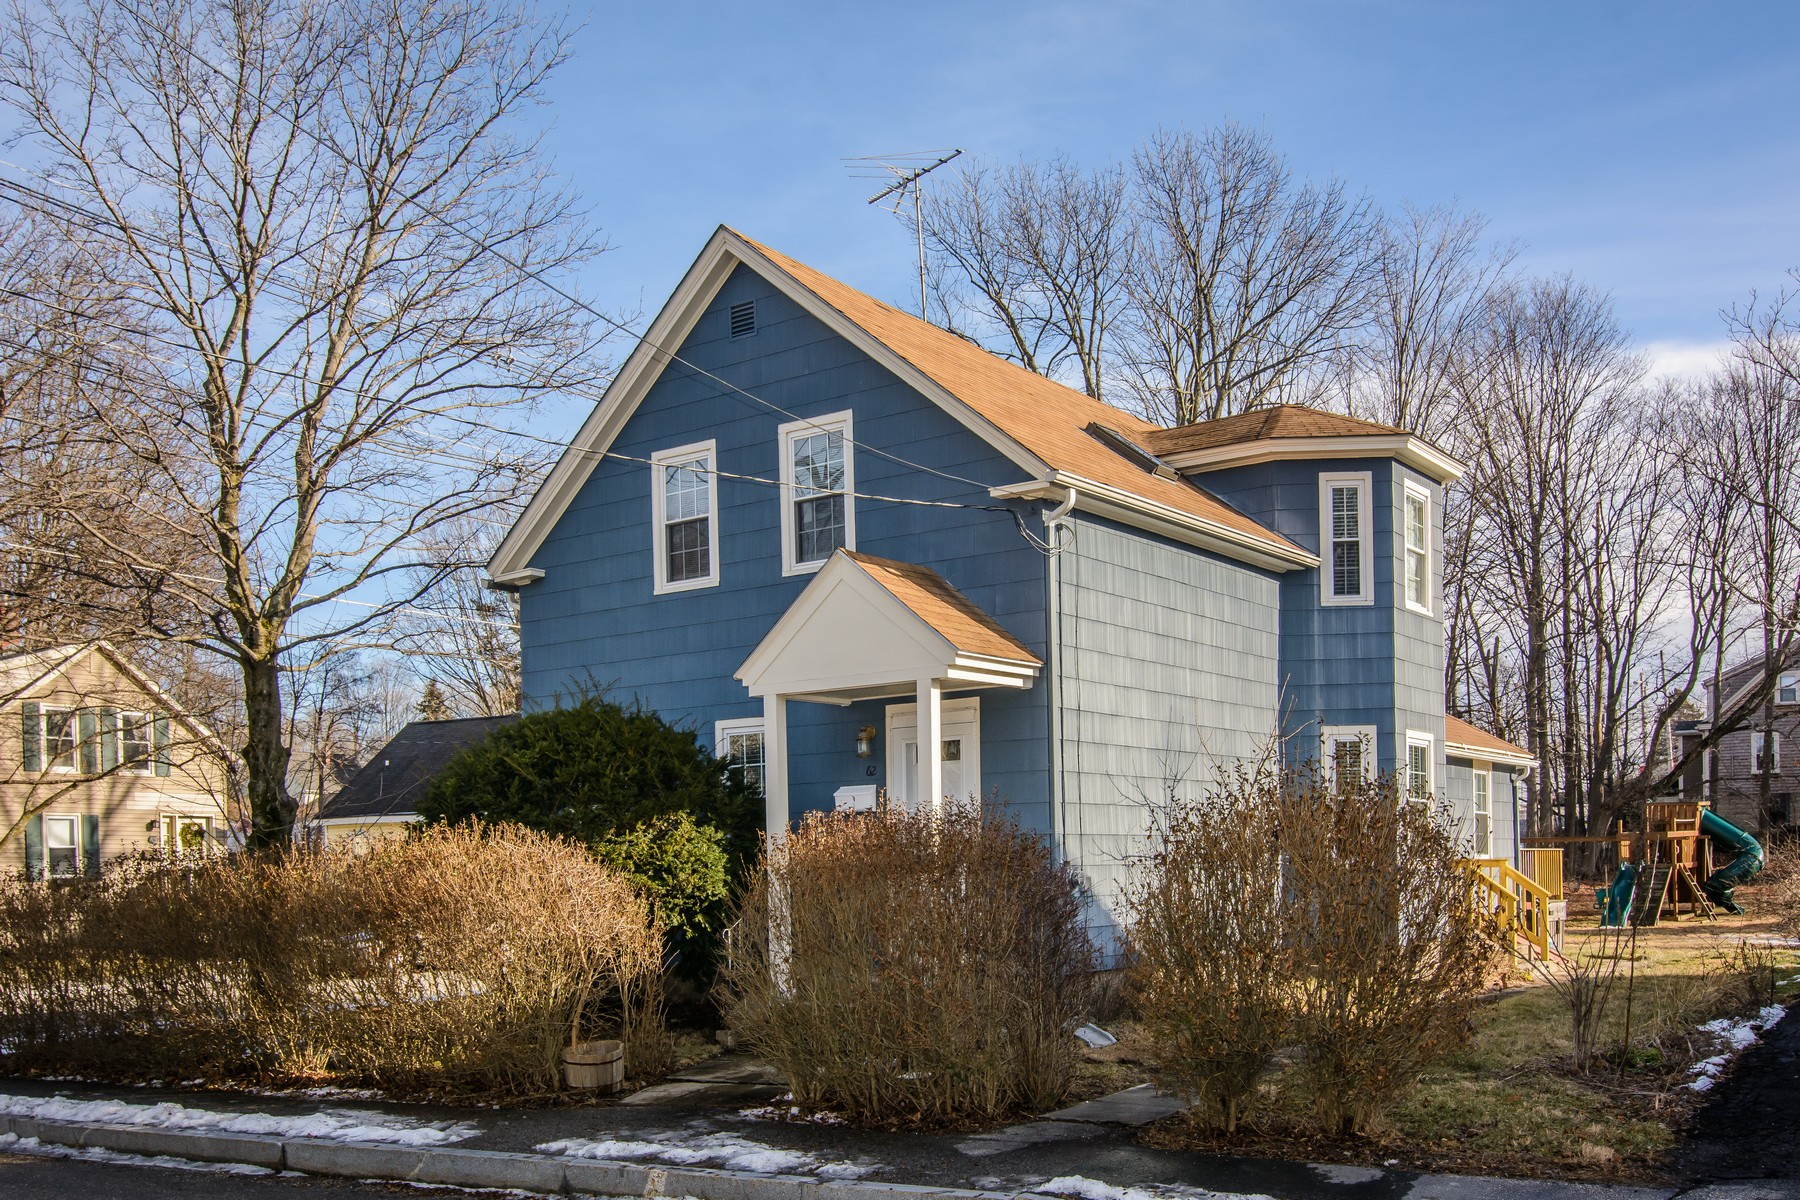 Single Family Home for Sale at Lovely Antique Colonial 62 Water Street Westborough, Massachusetts 01581 United States